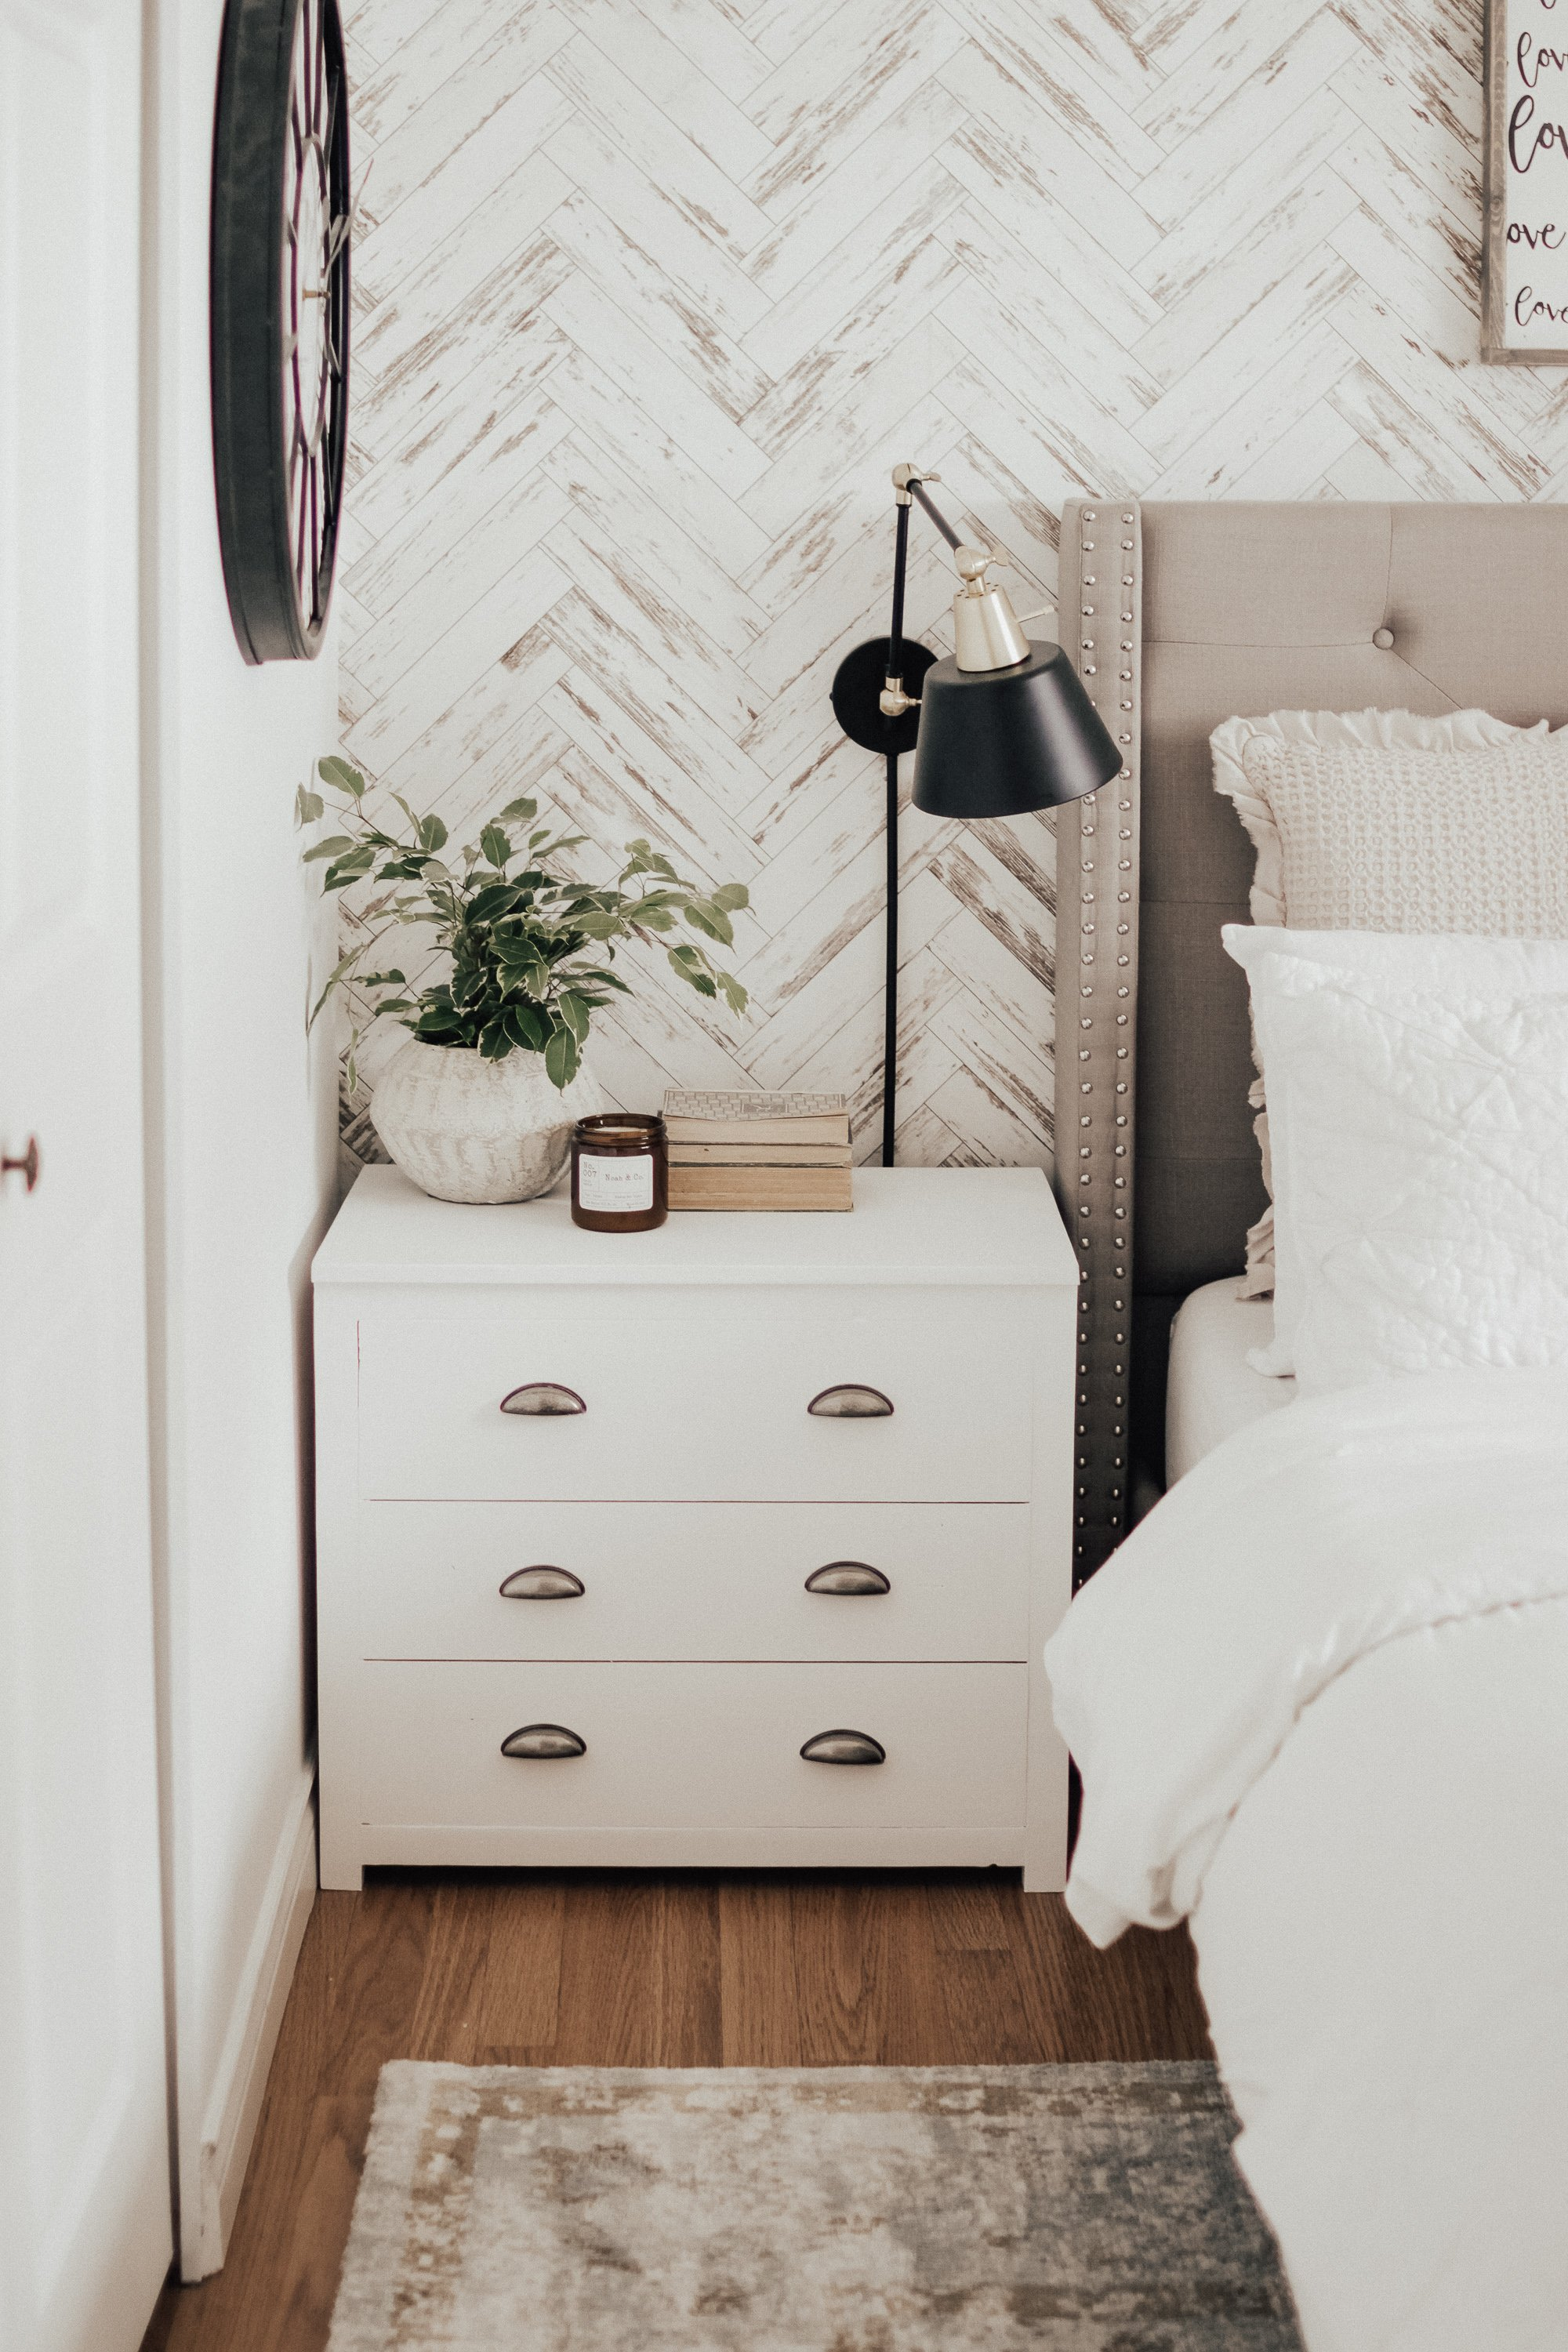 White Painted Modern Side Tables. How You Can easily refinish your side tables without spending a dime. Modern Farmhouse White Side Tables with a Restoration Hardware Look.